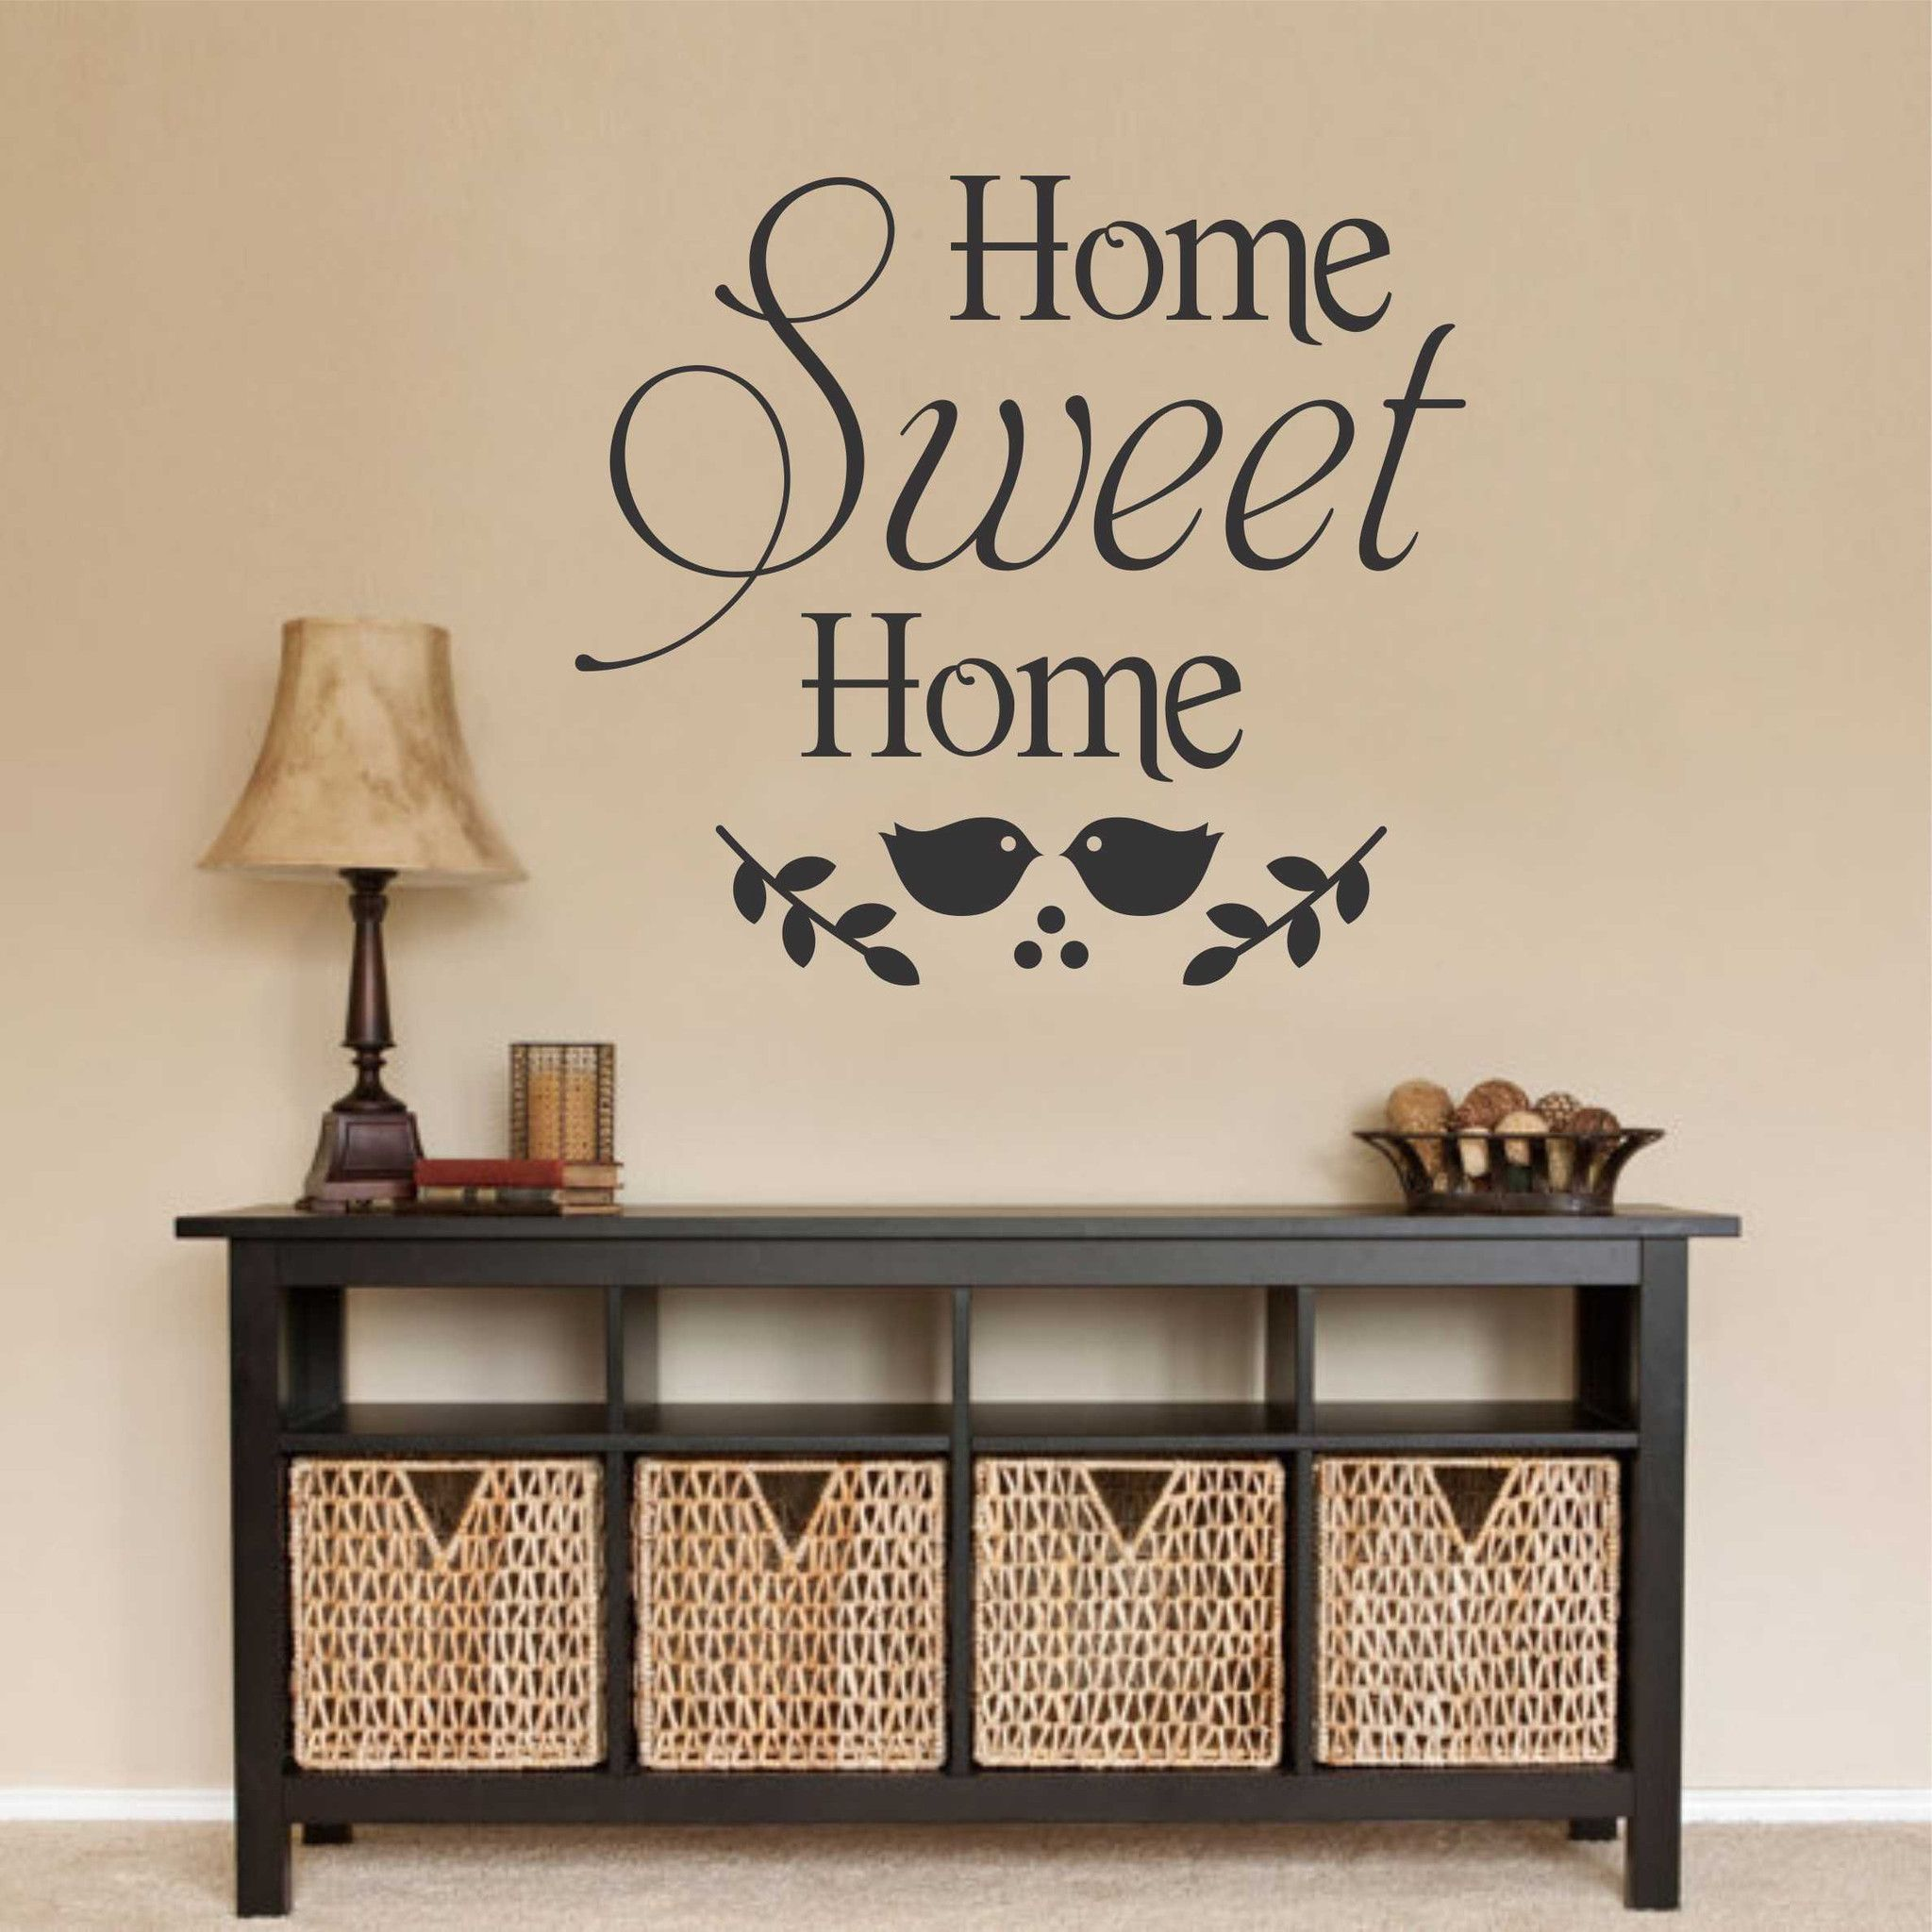 Home Sweet Home Decal Vinyl Wall Lettering Wall Quotes Bird - Custom vinyl wall lettering decals